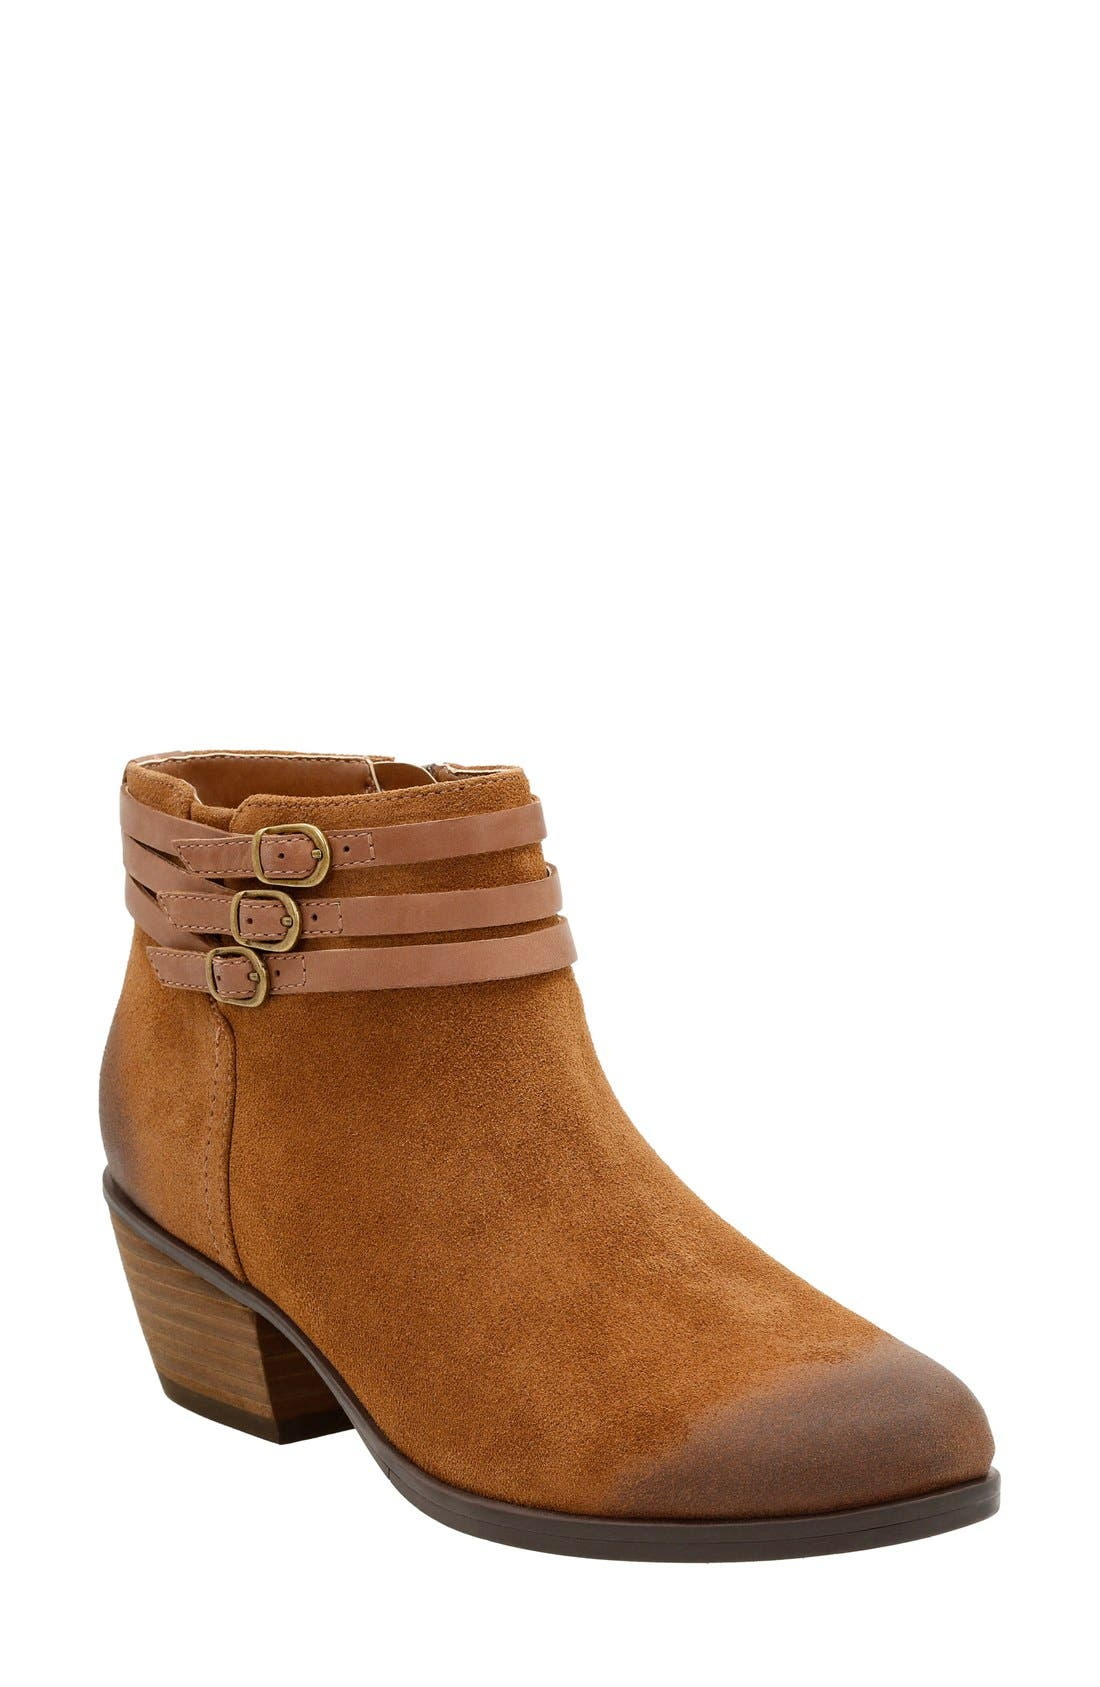 'Gelata Siena' Ankle Boot, Main, color, 215